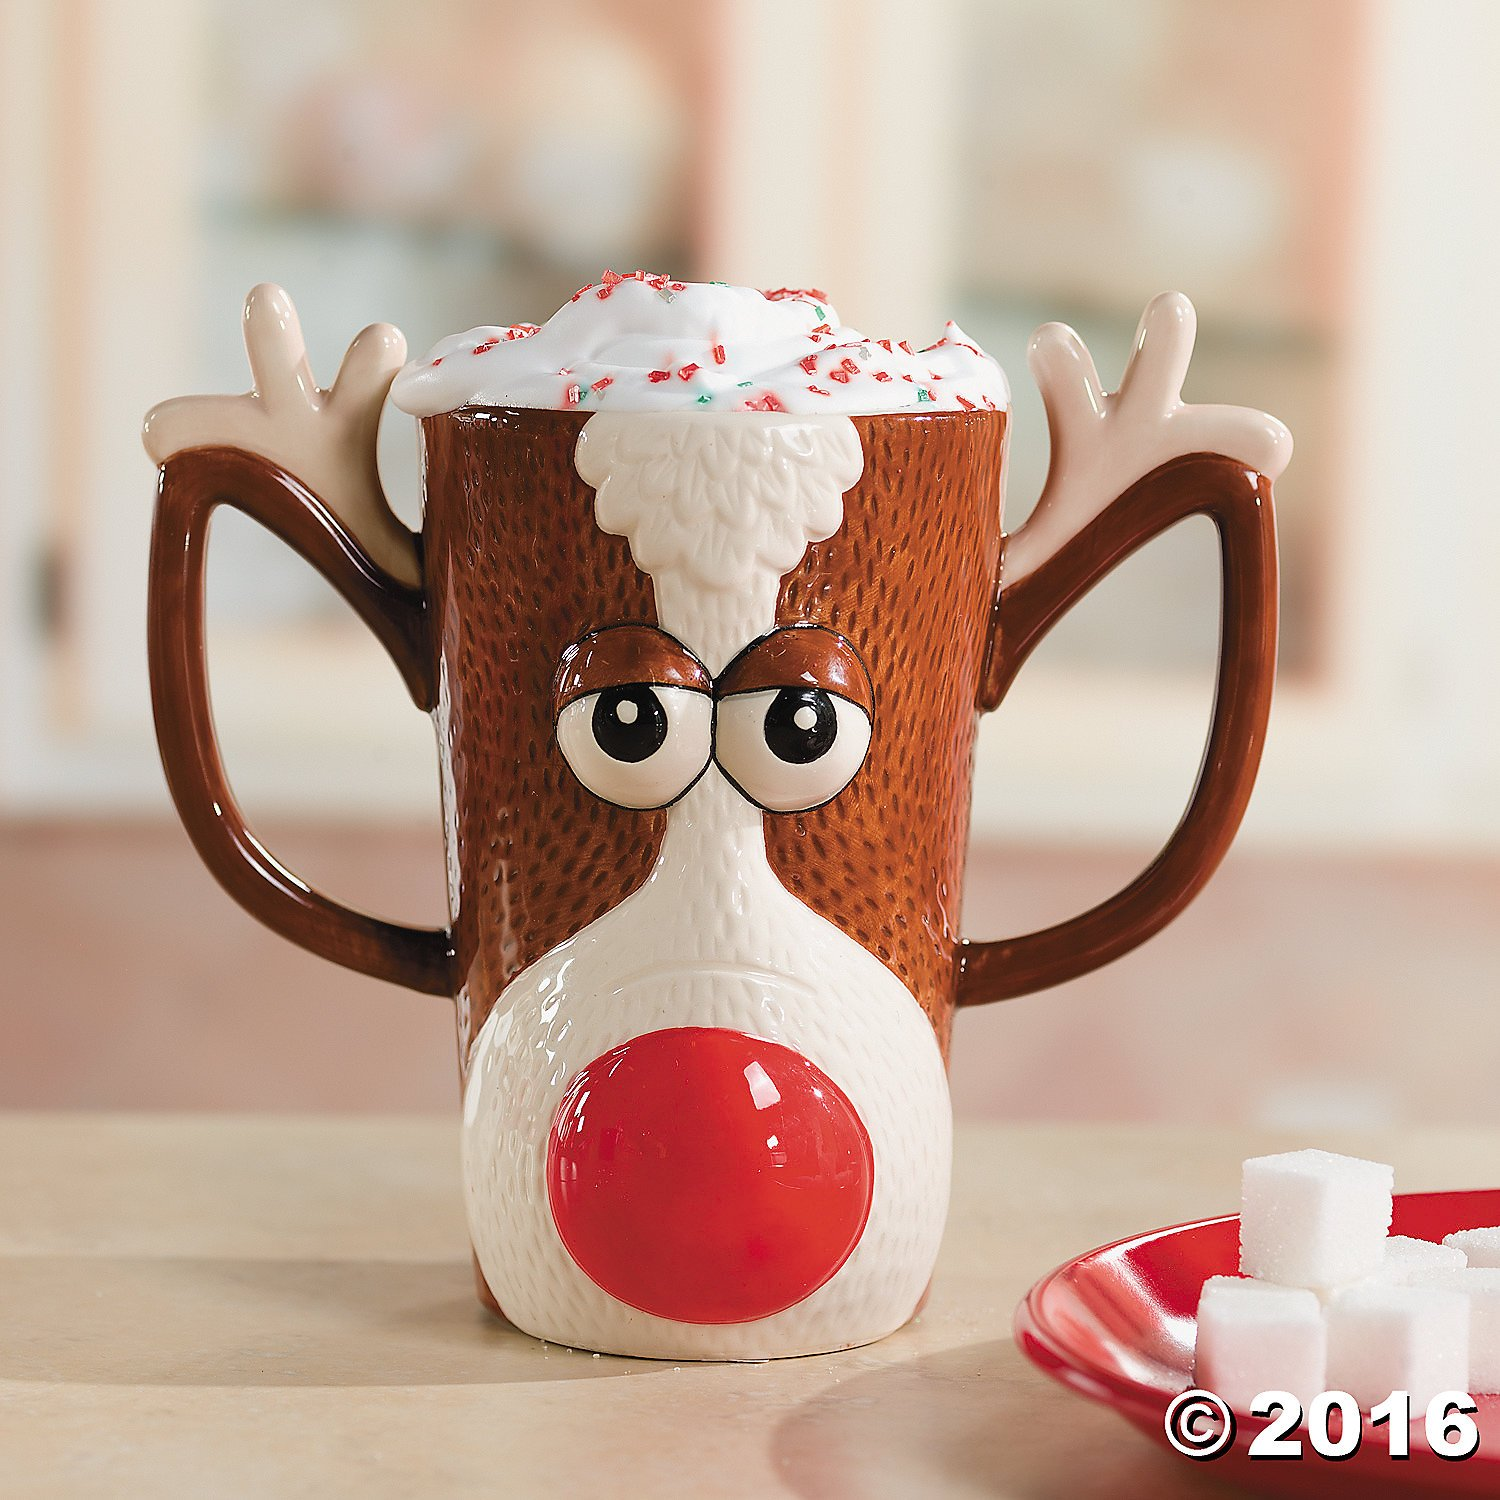 amazoncom reindeer face holiday mug w red nose and antlers by fe 2 pack coffee cups mugs - Christmas Coffee Cups